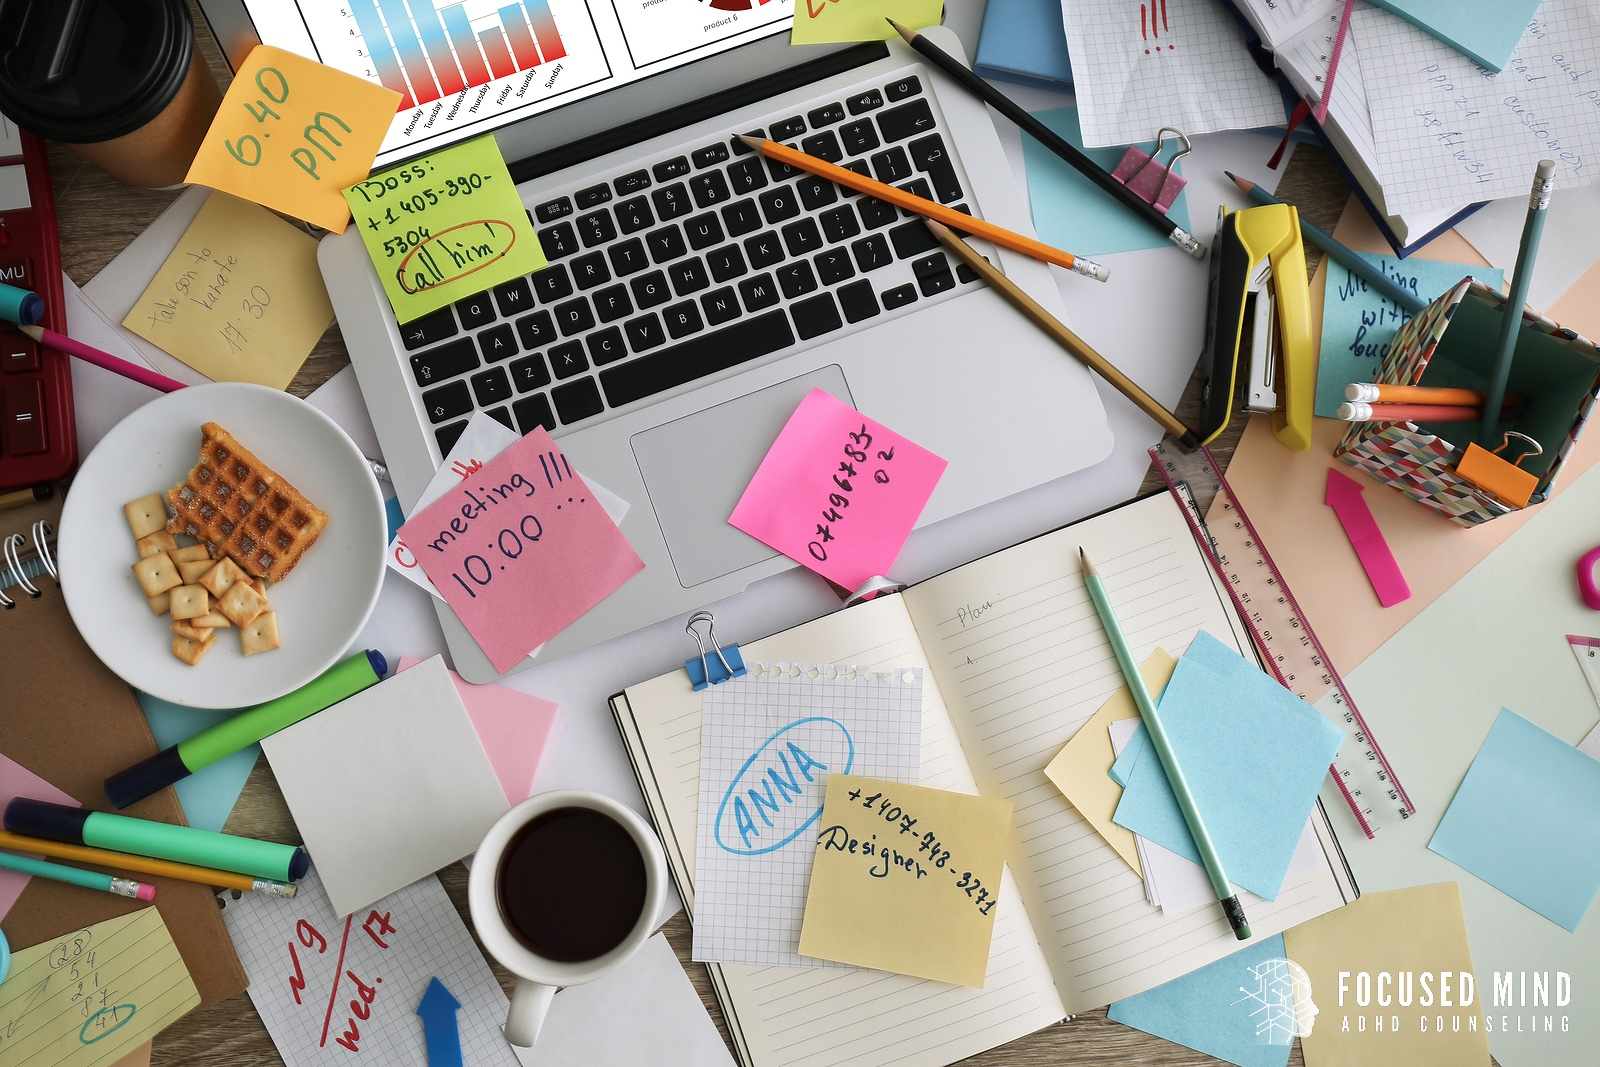 A top down perspective of a desk cluttered with post it notes, pencils, and other office supplies. This could symbolize the workspace of an adult with ADHD. We offer similar support for adult ADHD treatment in Ohio. Contact an adult ADHD specialist to start cbt for adult adhd and other services.